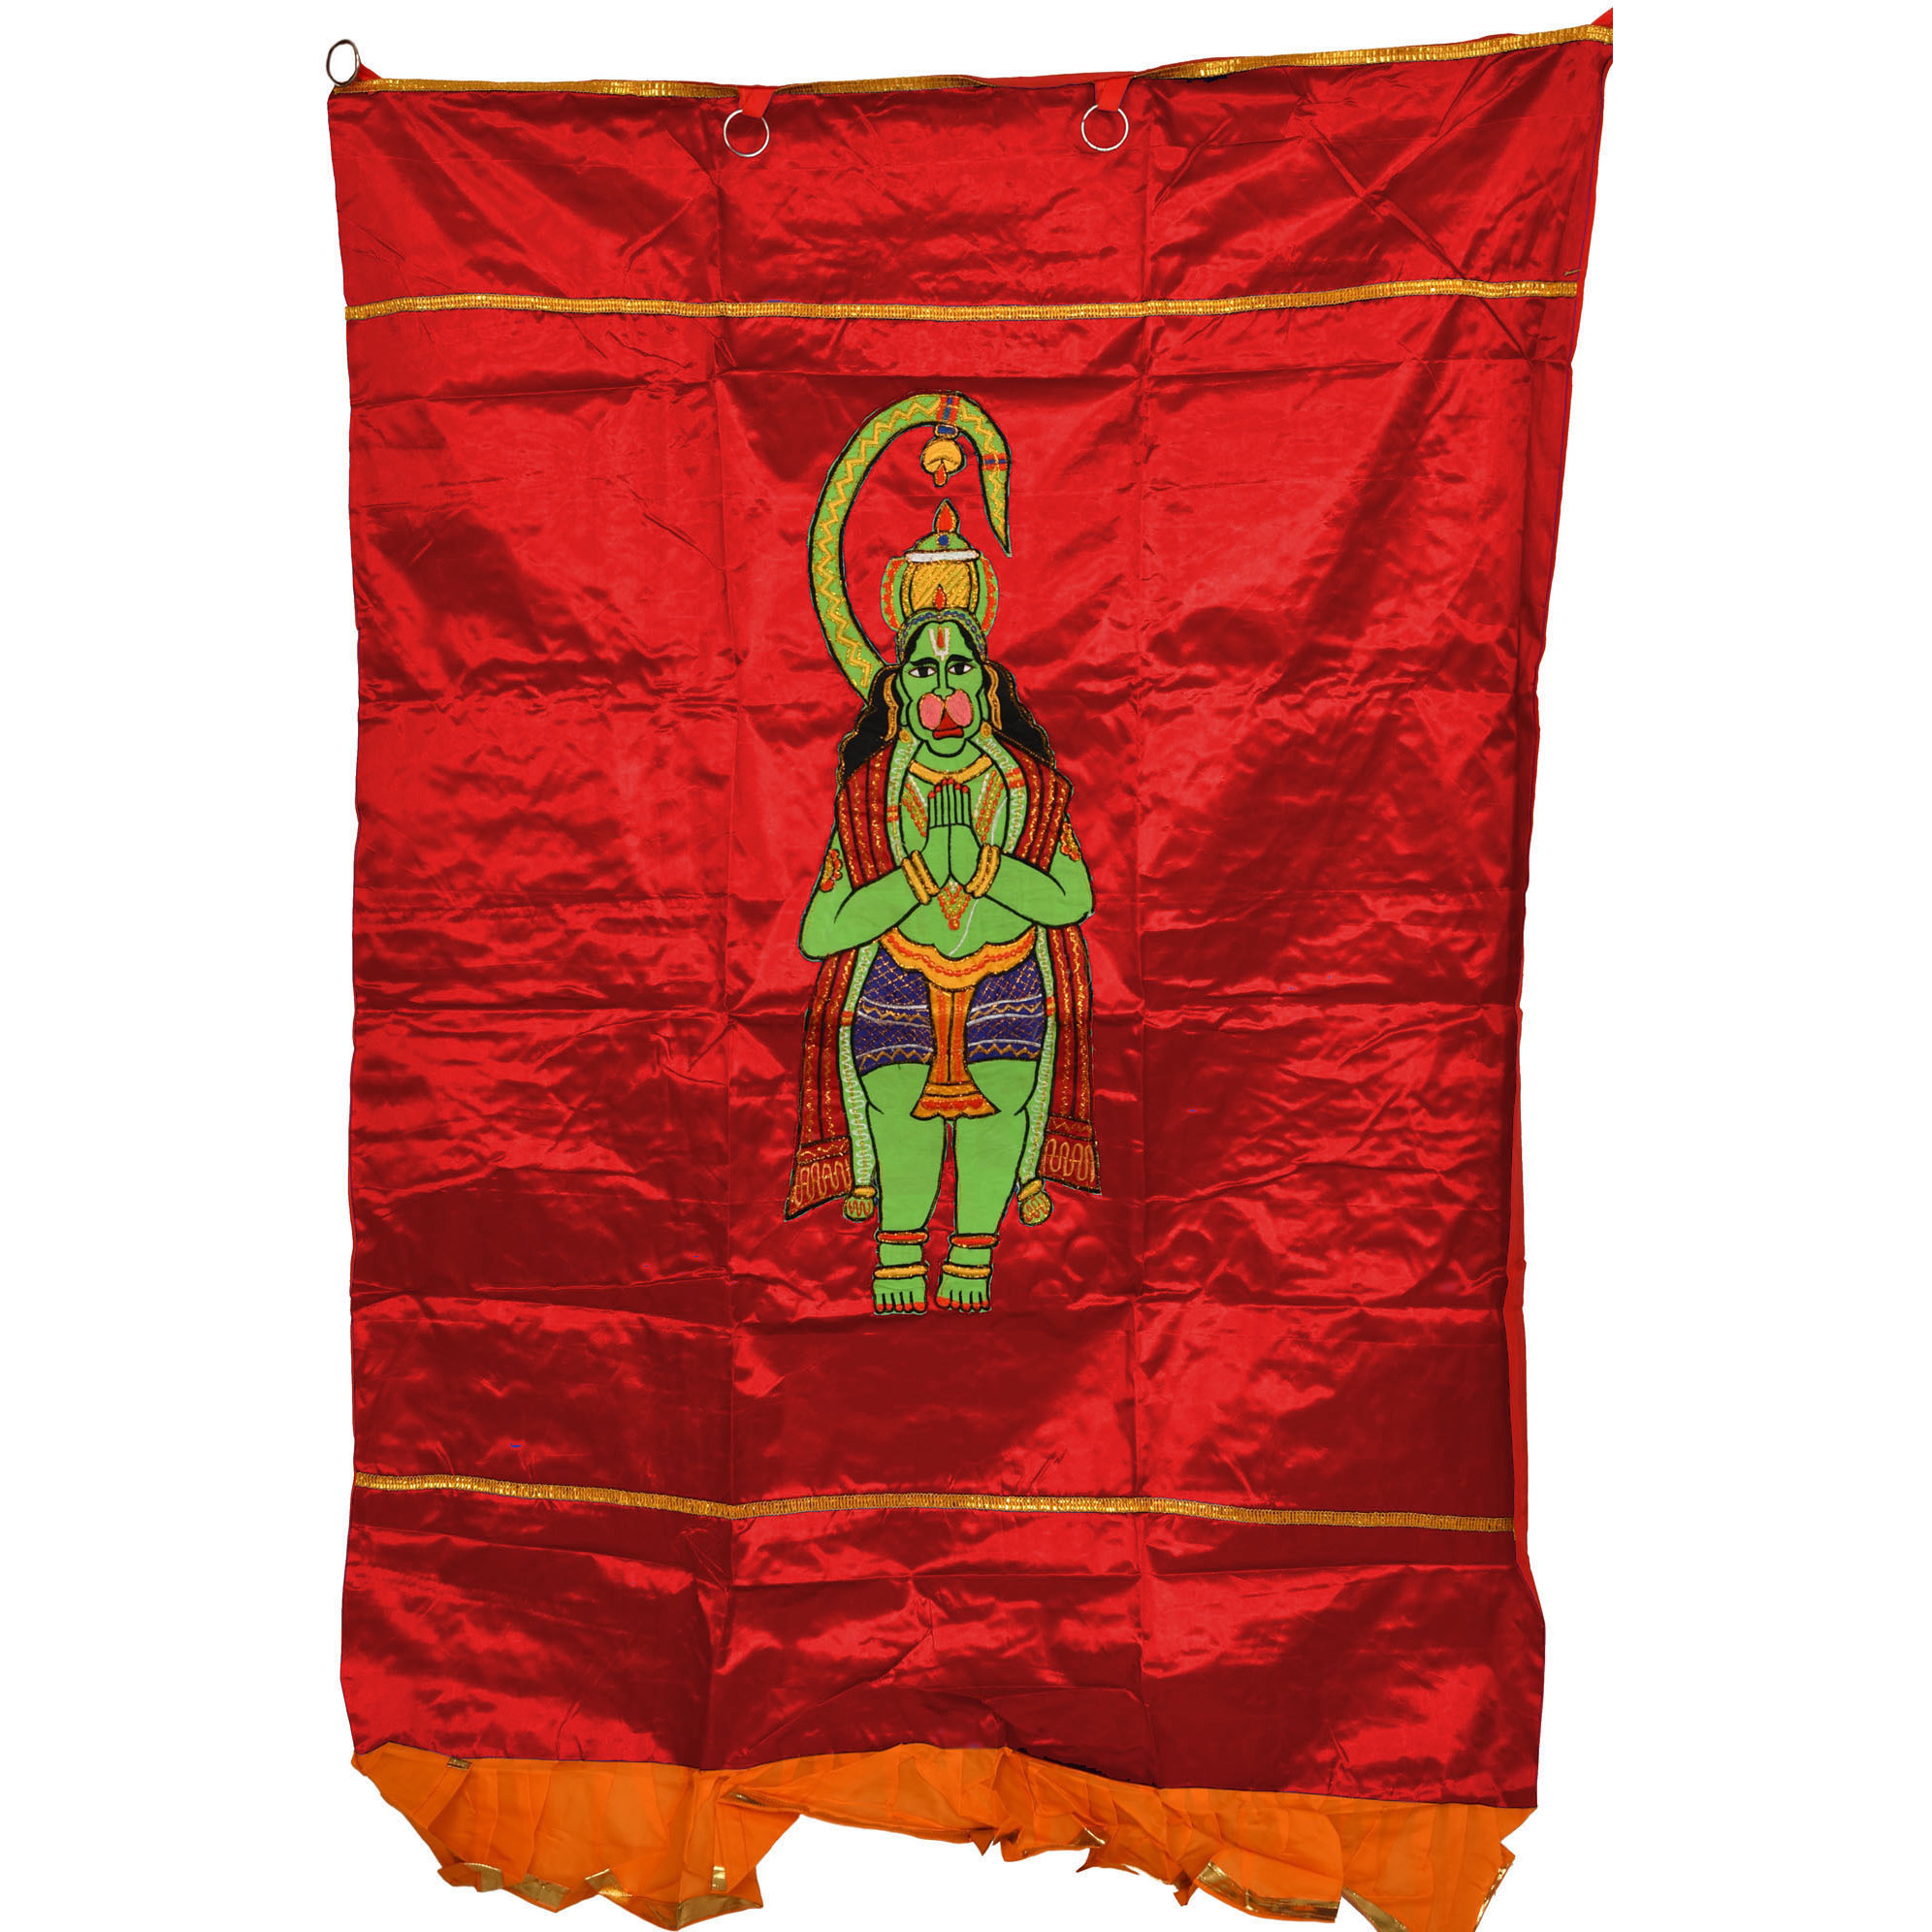 Tomato-Red Auspicious Temple Curtain with Embroidered Lord Hanuman in Applique